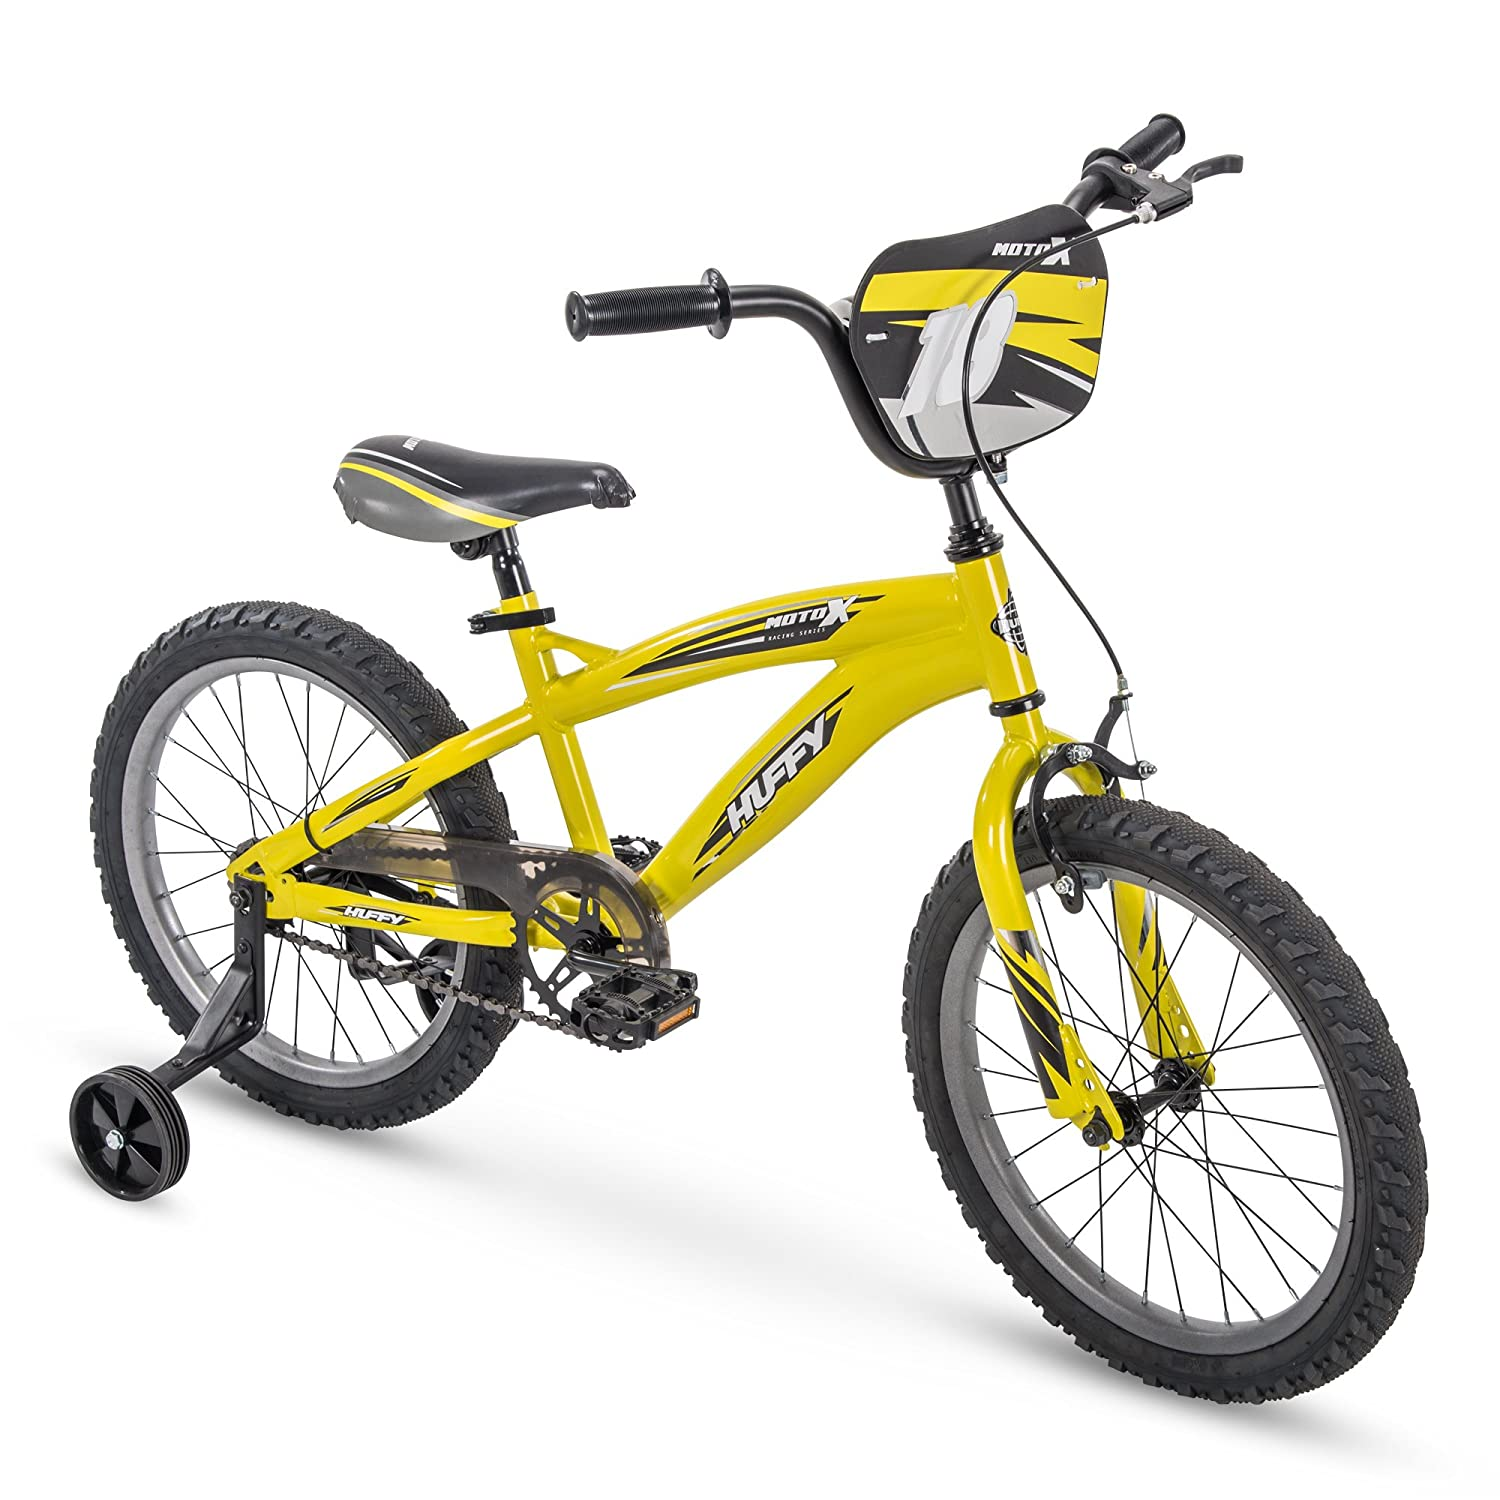 Top 9 Best BMX Bikes For Kids Reviews in 2021 2